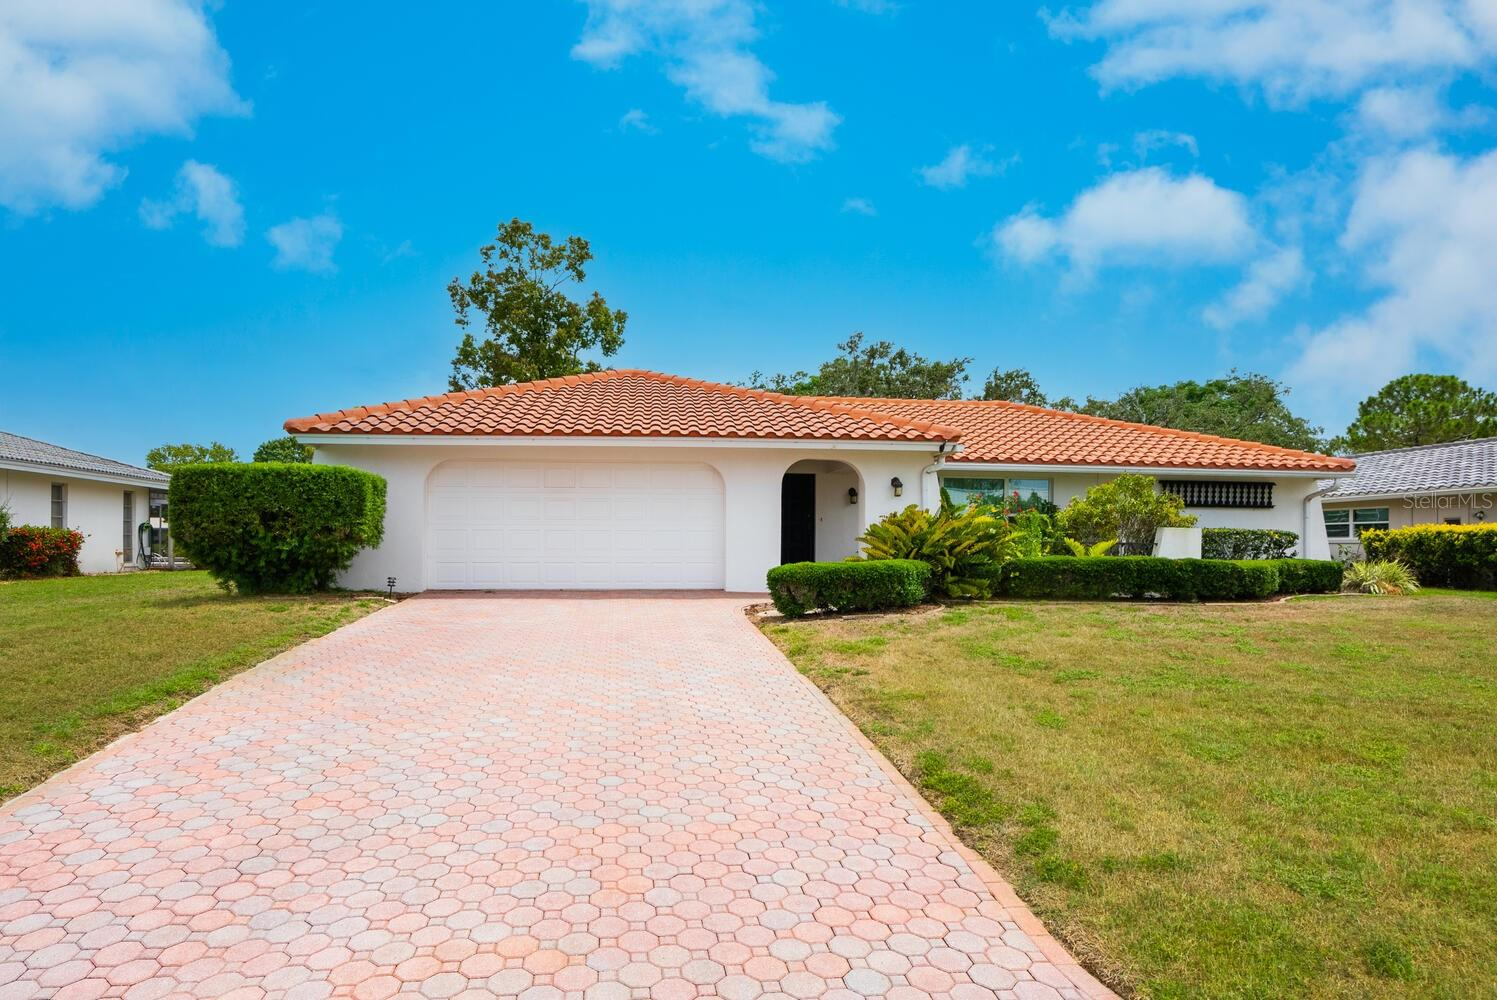 Primary photo of recently sold MLS# A4504837